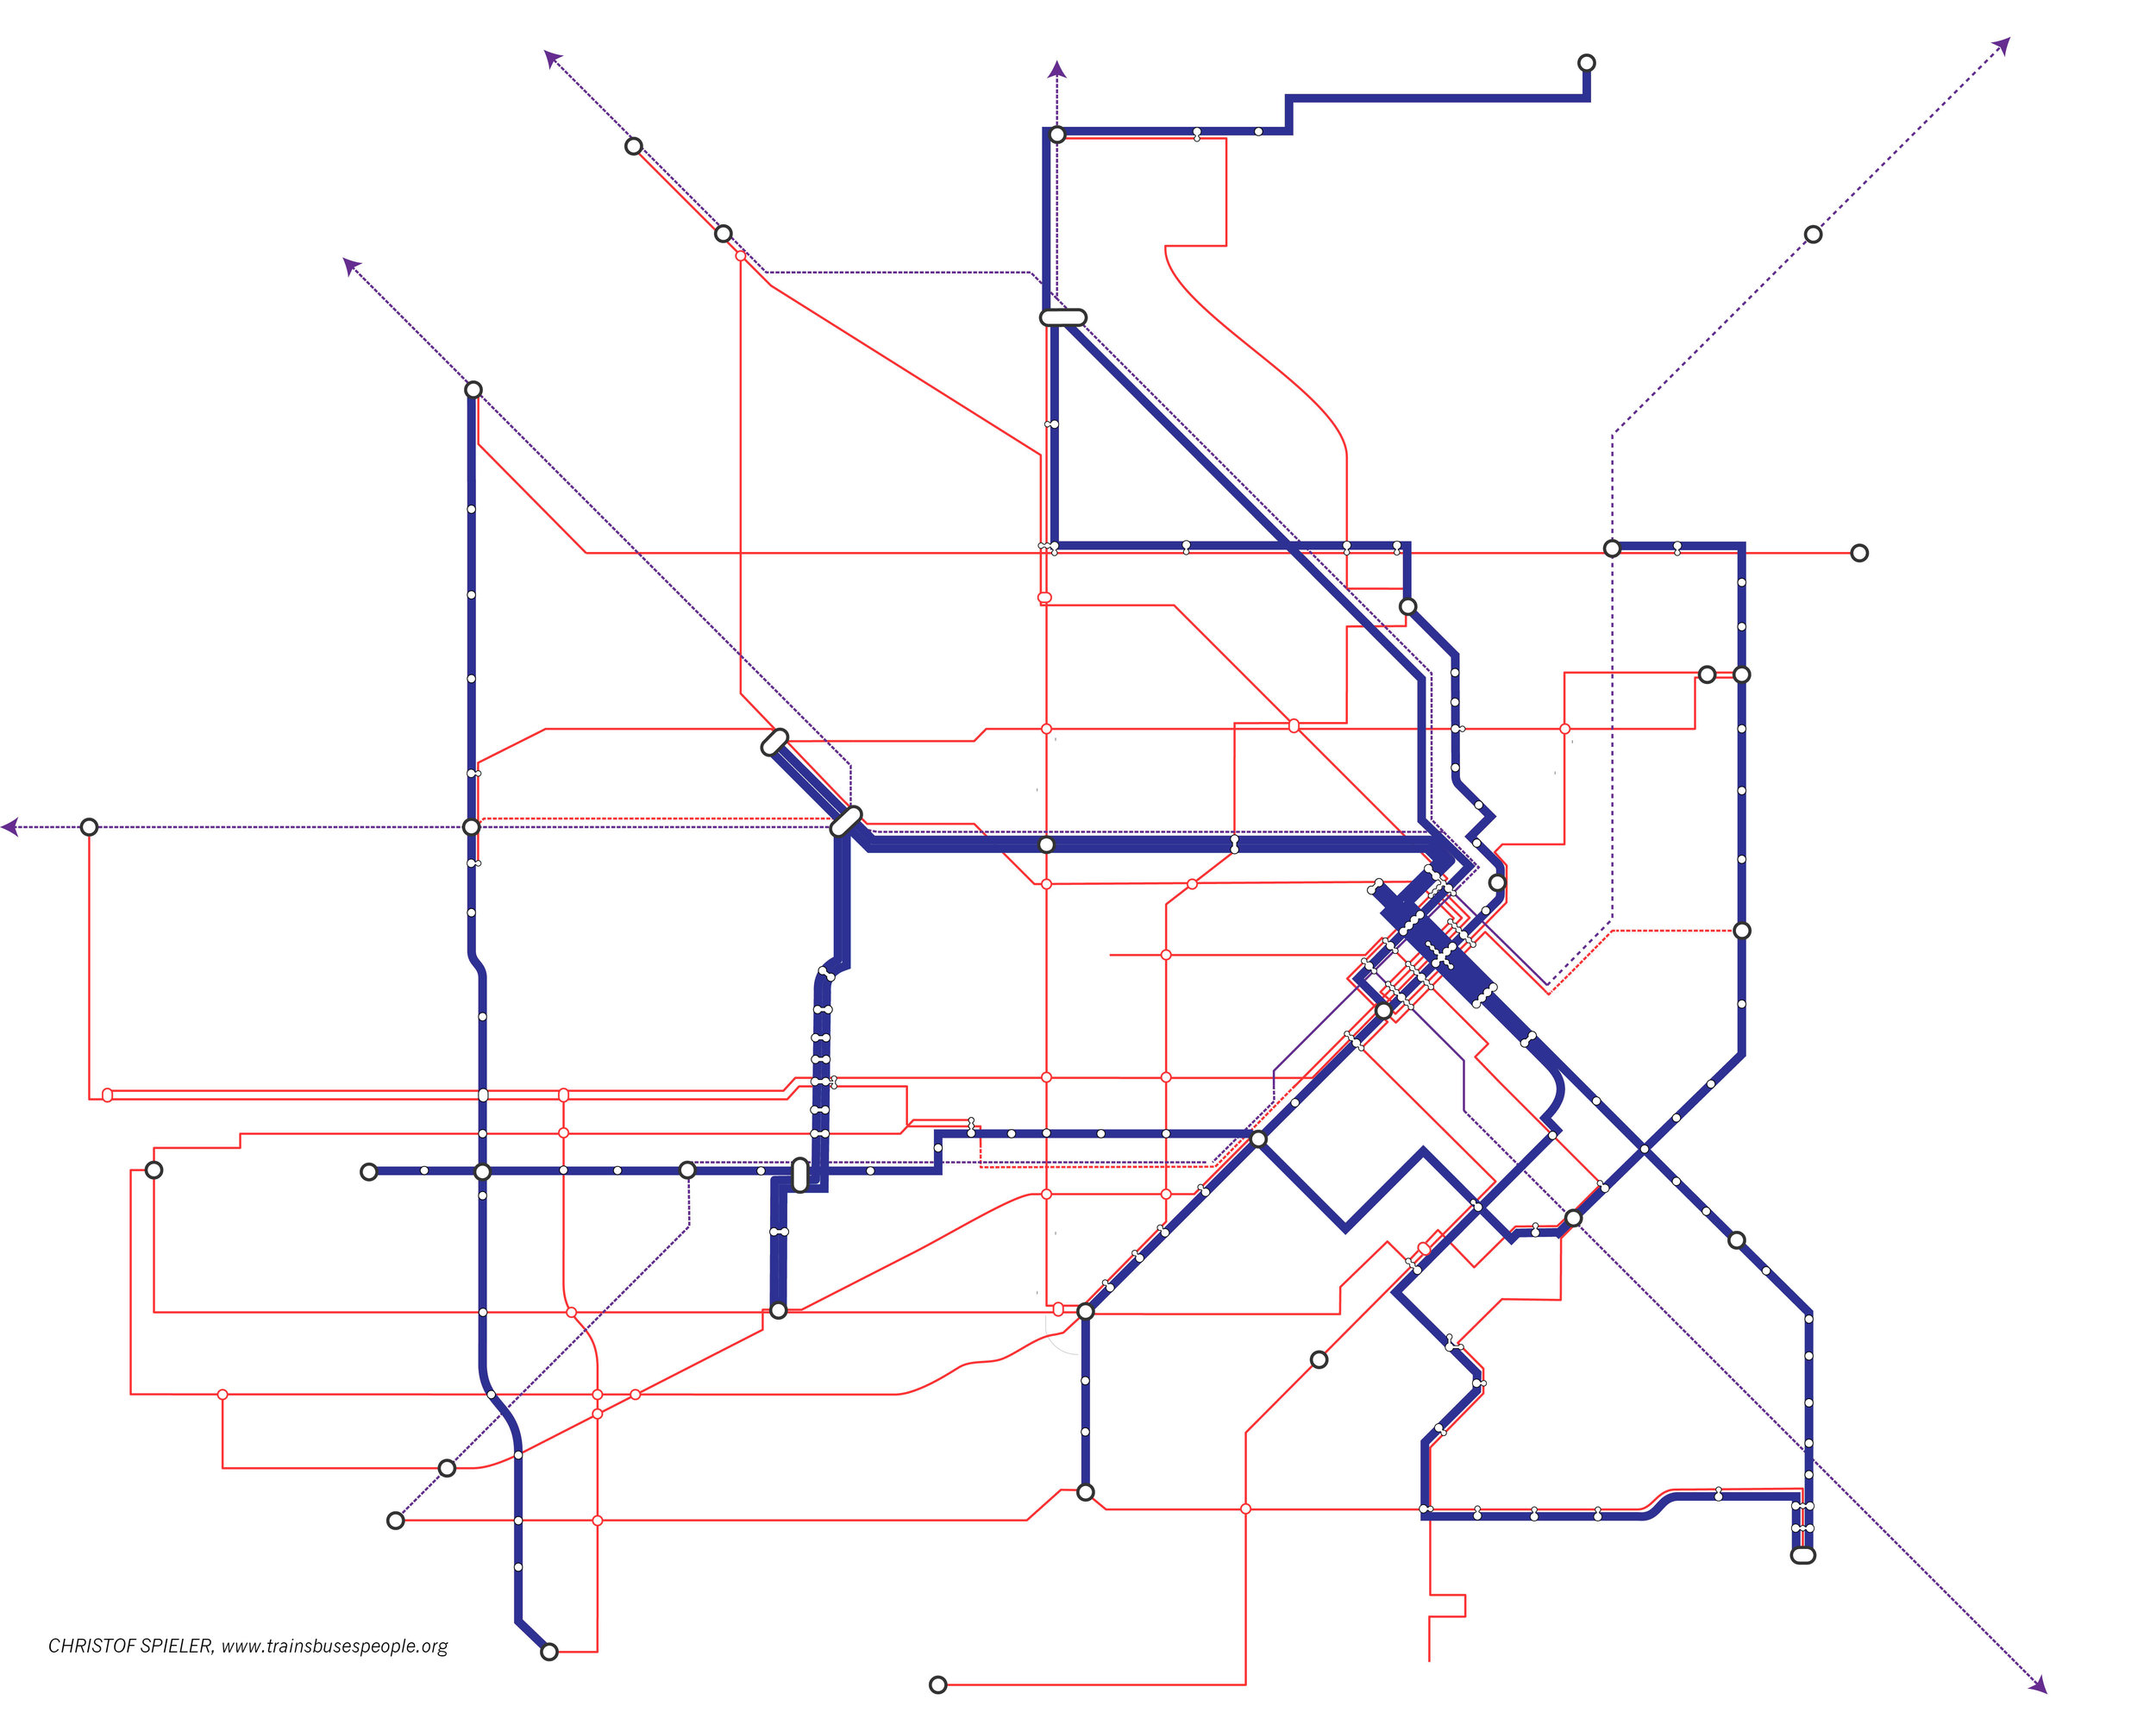 Diagram of METRONext frequent transit network.